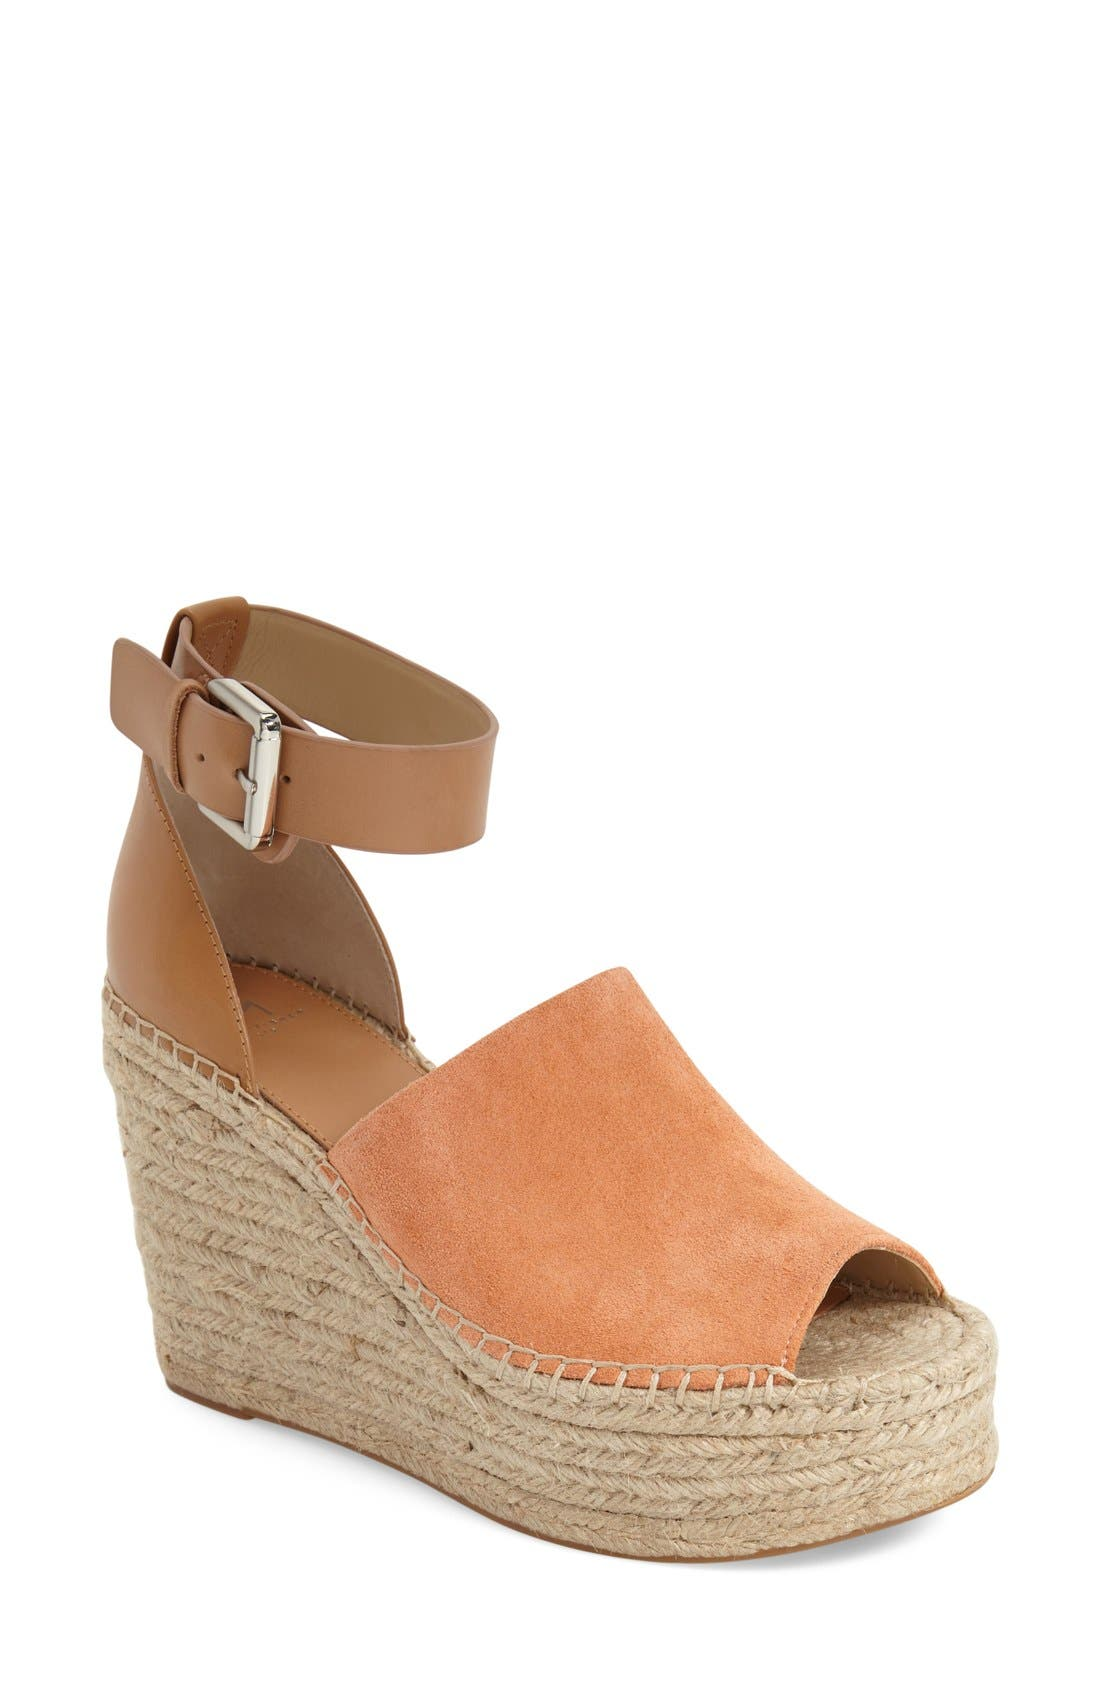 Main Image - Marc Fisher LTD 'Adalyn' Espadrille Wedge Sandal (Women)